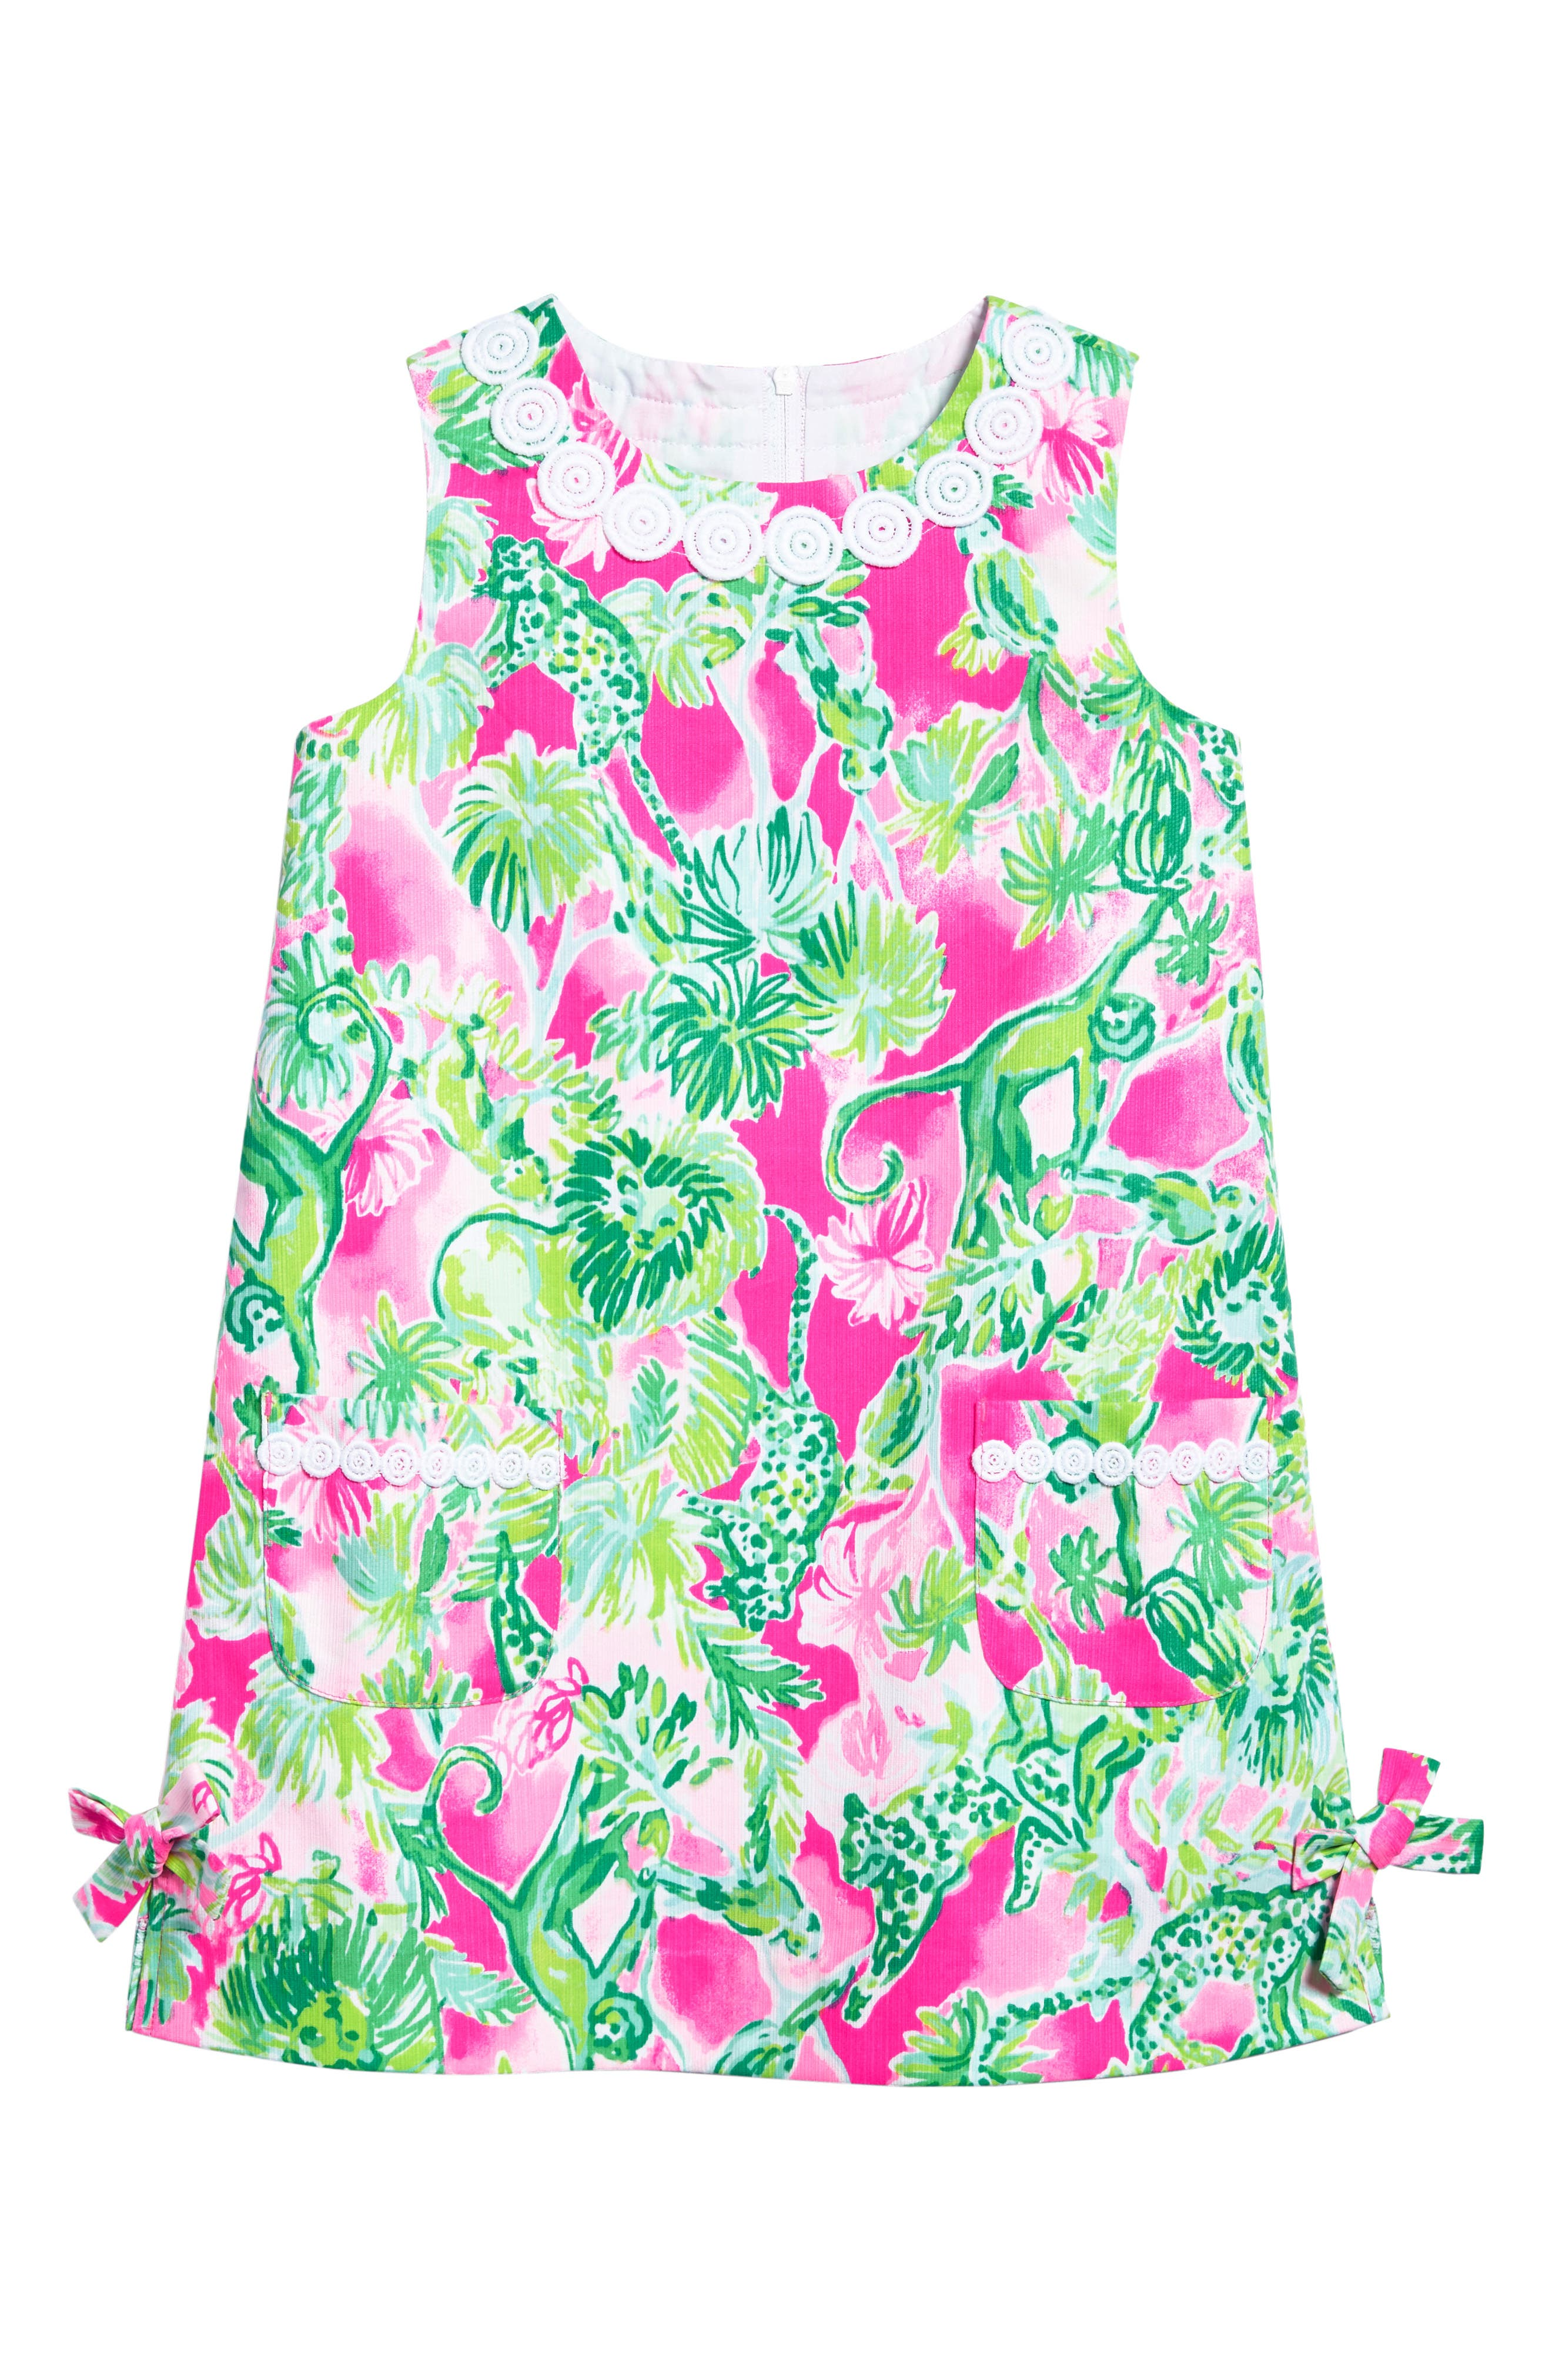 Alternate Image 1 Selected - Lilly Pulitzer® Little Lilly Shift Dress (Toddler Girls, Little Girls & Big Girls)